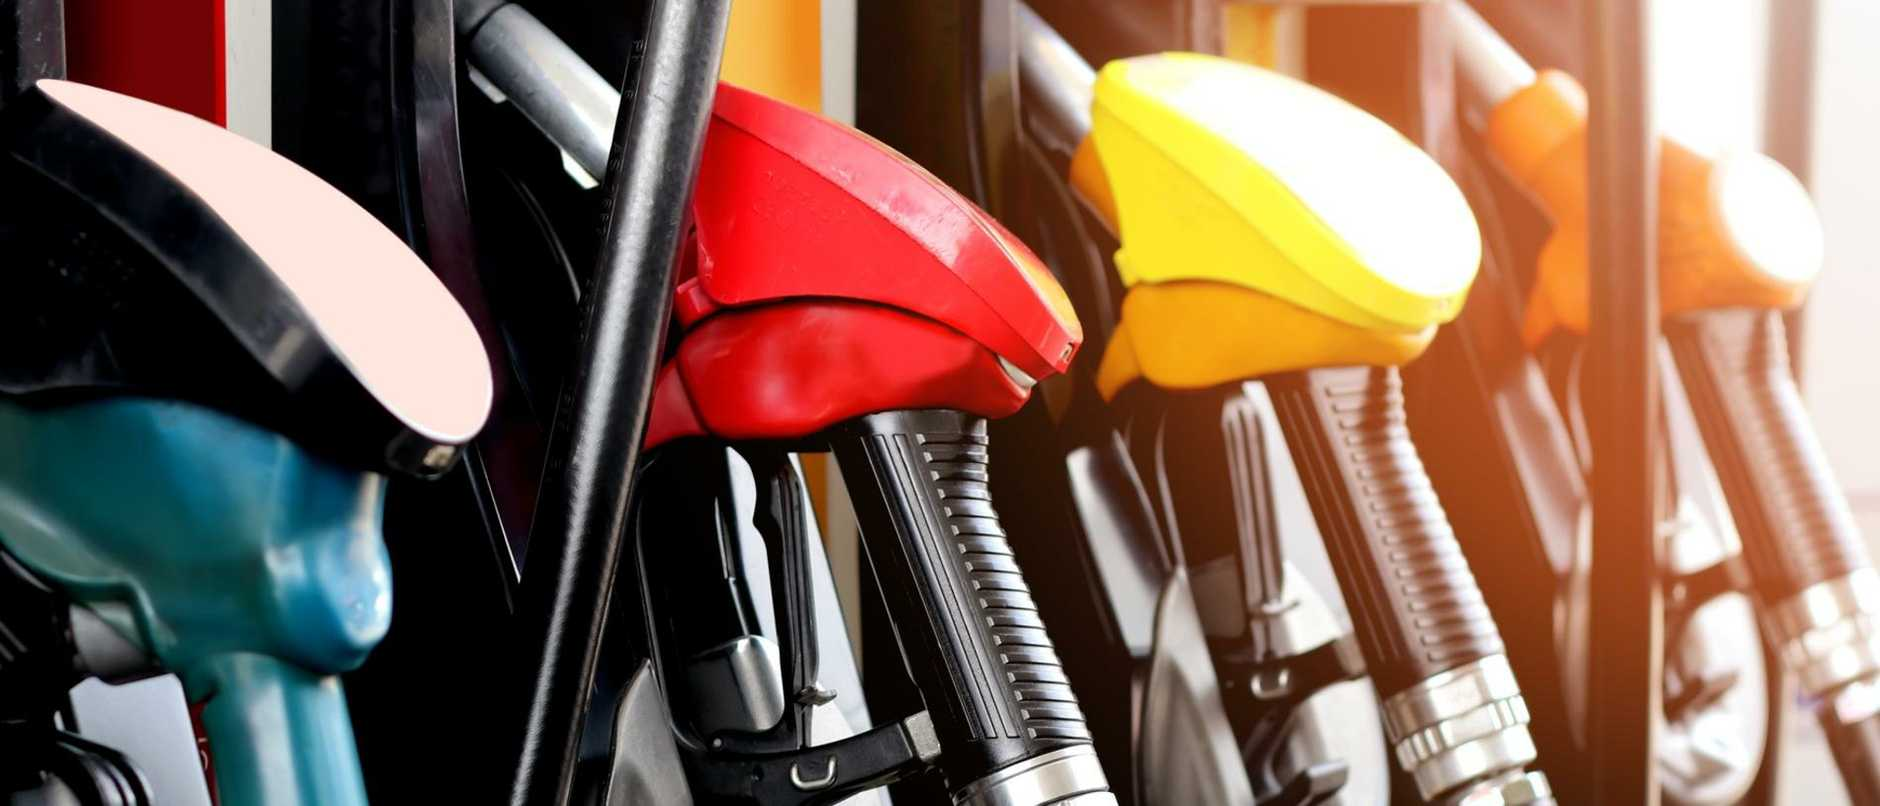 A peak automotive group is urging motorists to shop around or fill up the tank only if desperate, as fuel prices climb to near-record highs.